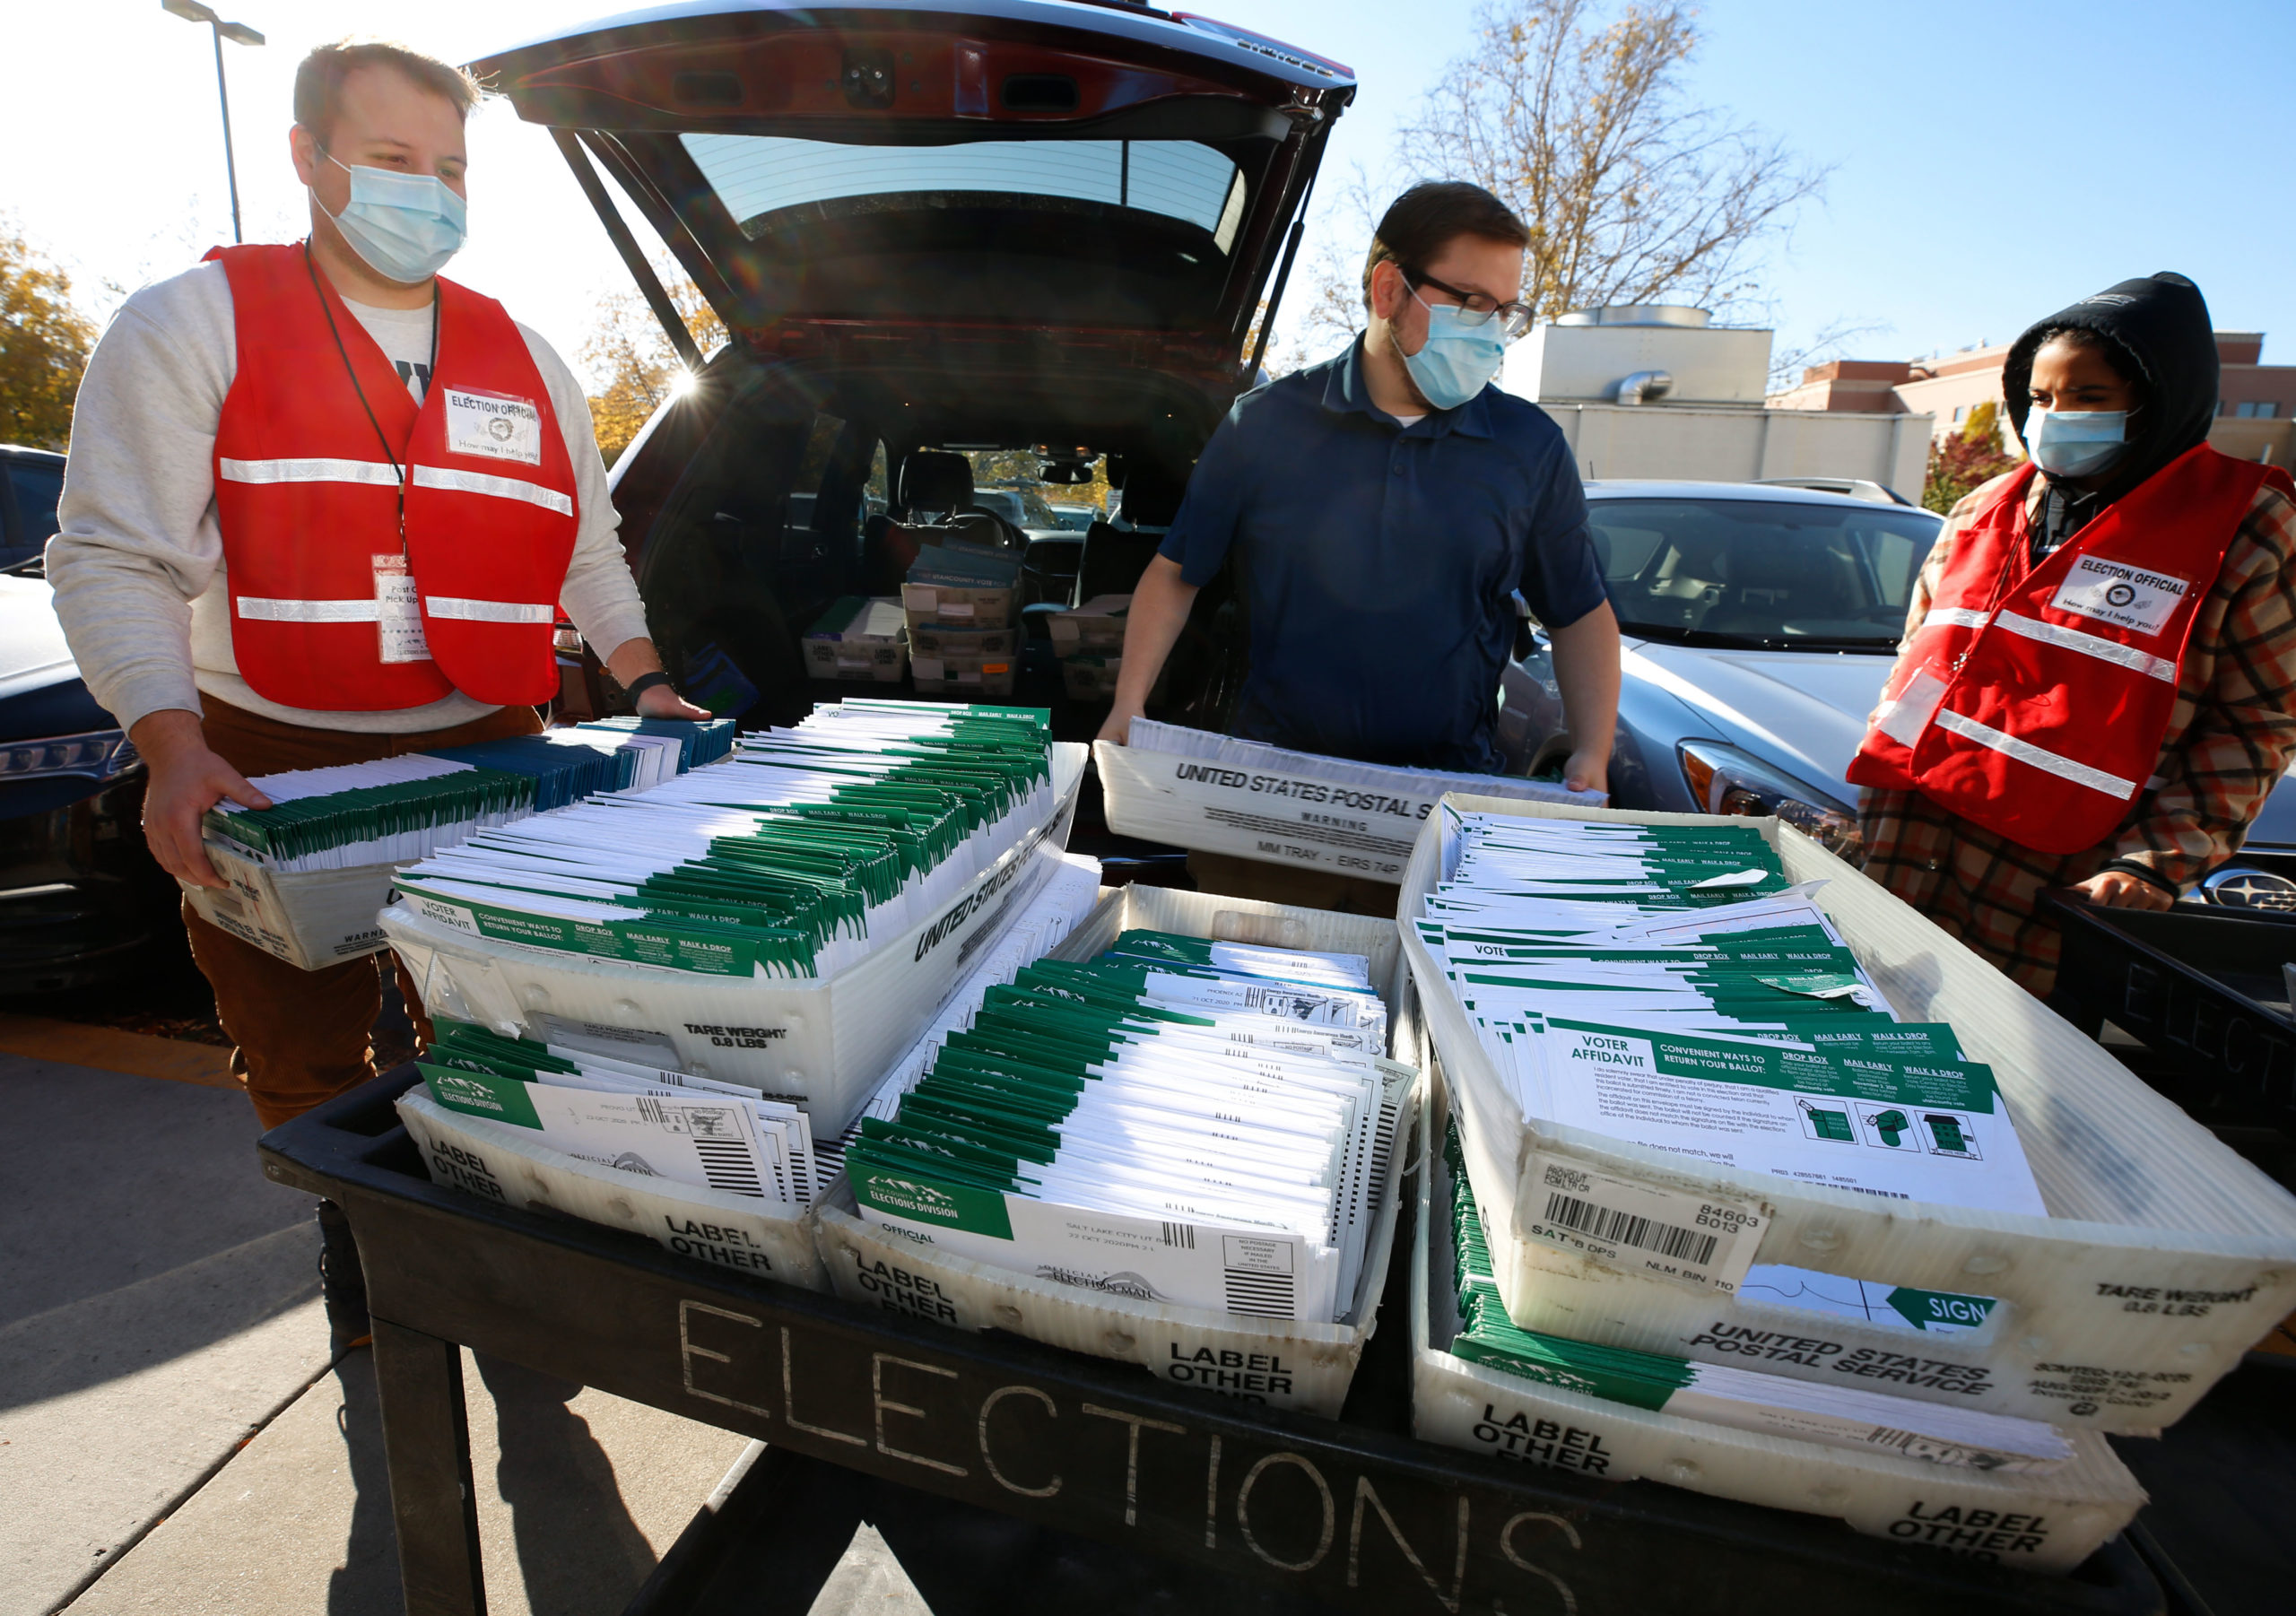 Utah County Election workers unload ballots that were picked up at a United States Postal Service office on Monday in Provo, Utah. (George Frey/Getty Images)